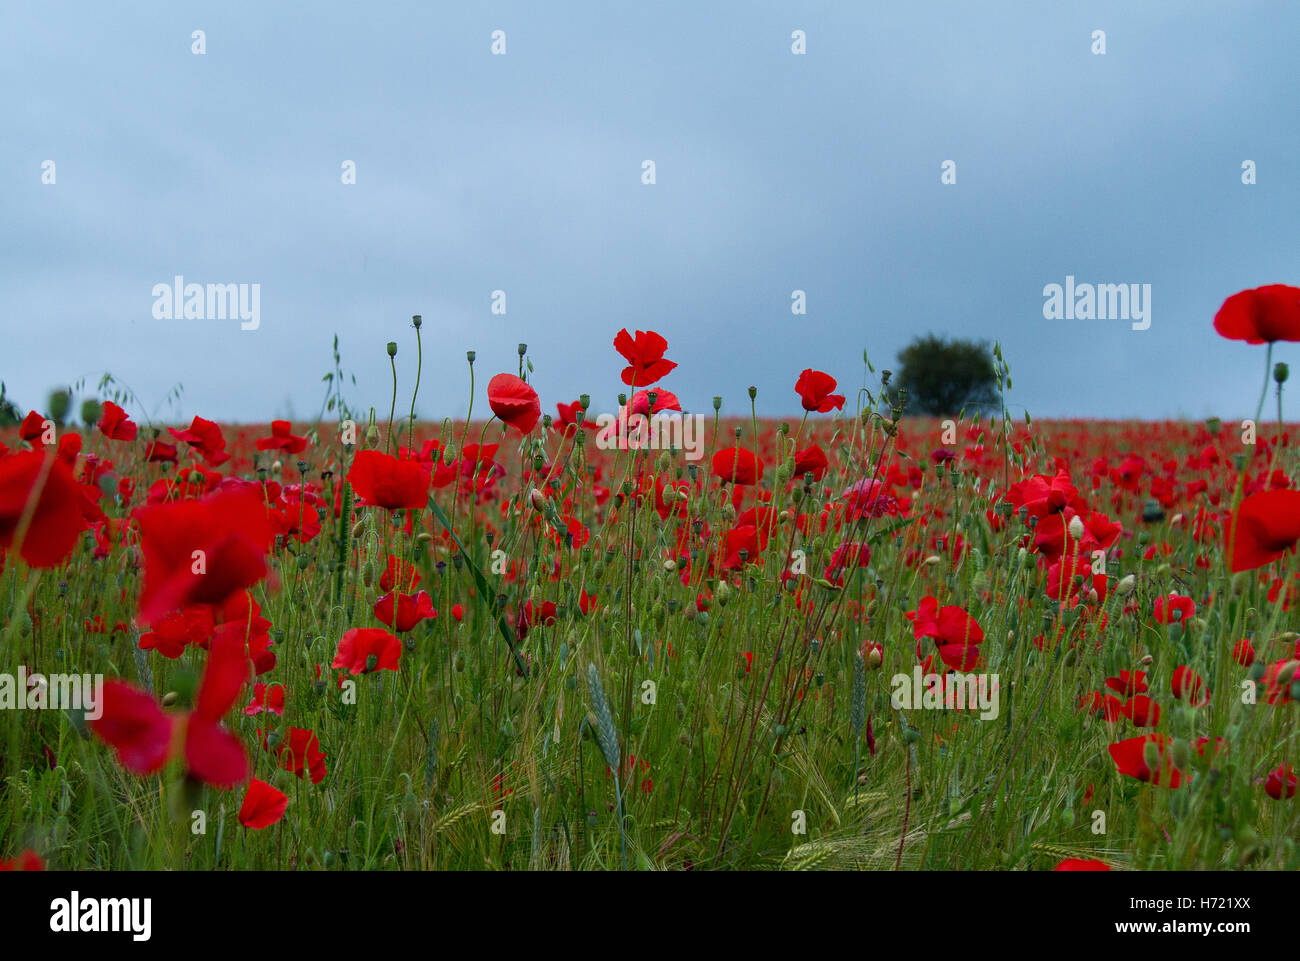 Poppy field near Llangollen in North Wales standing out in a sea of red and green - Stock Image